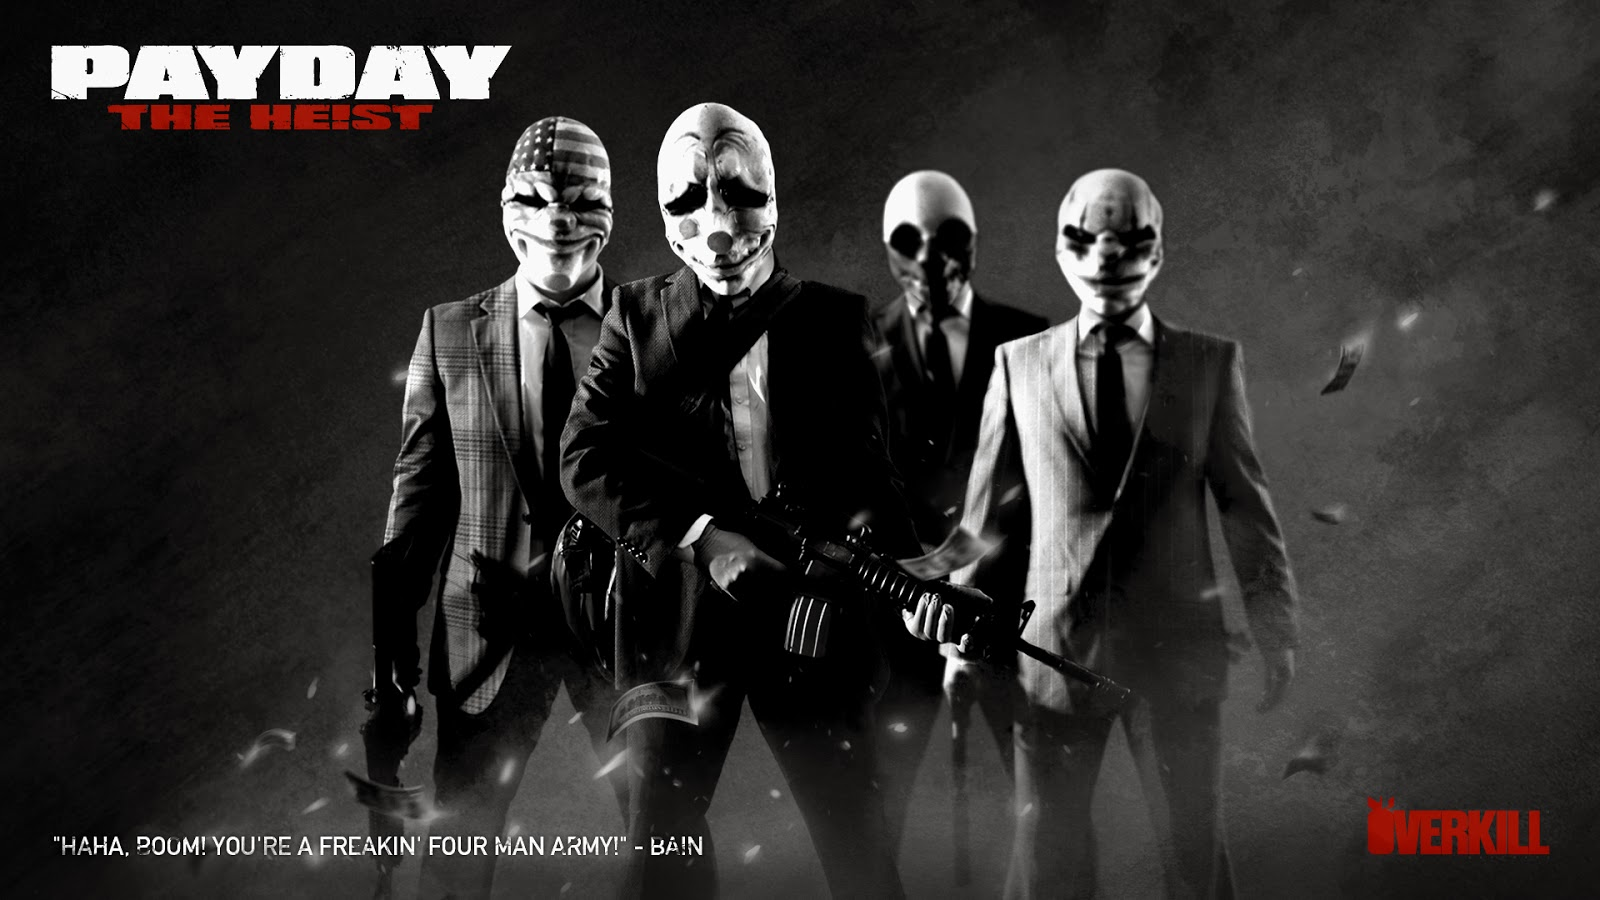 Pics Arrena: Payday 2 Wallpapers